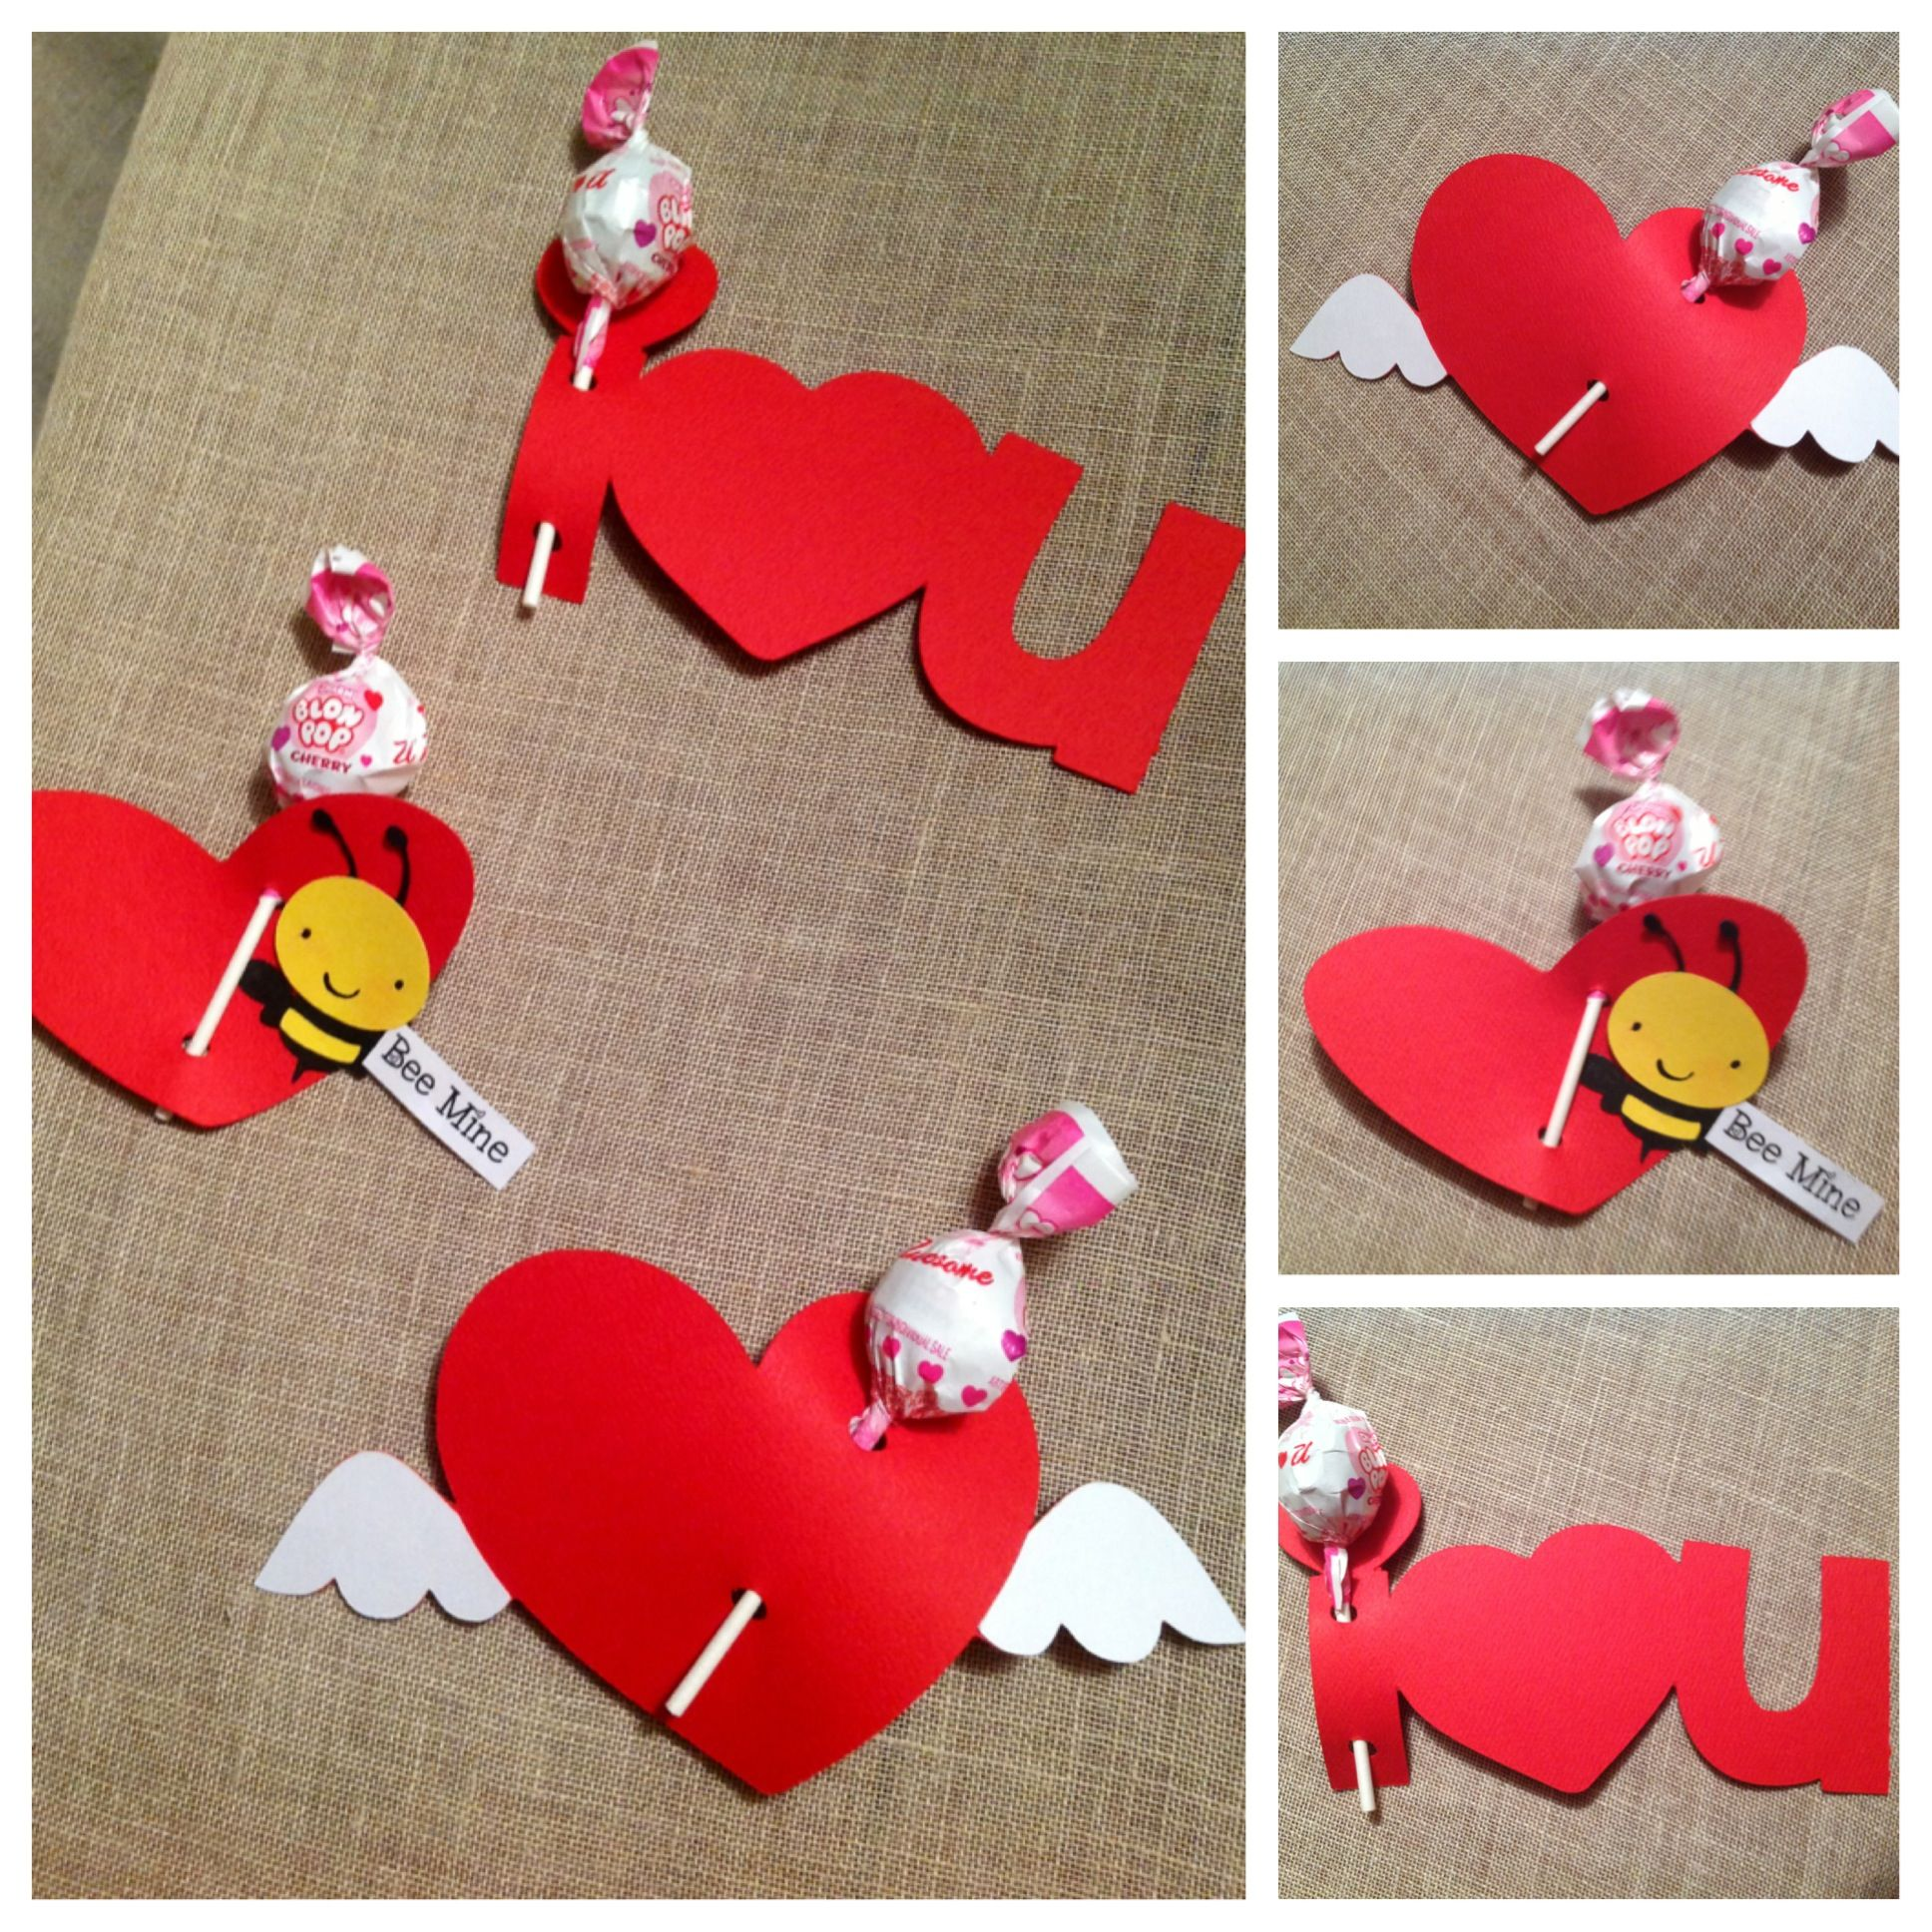 Candygram Fundraiser. Cute idea. Valentine's Day. | My Style ...